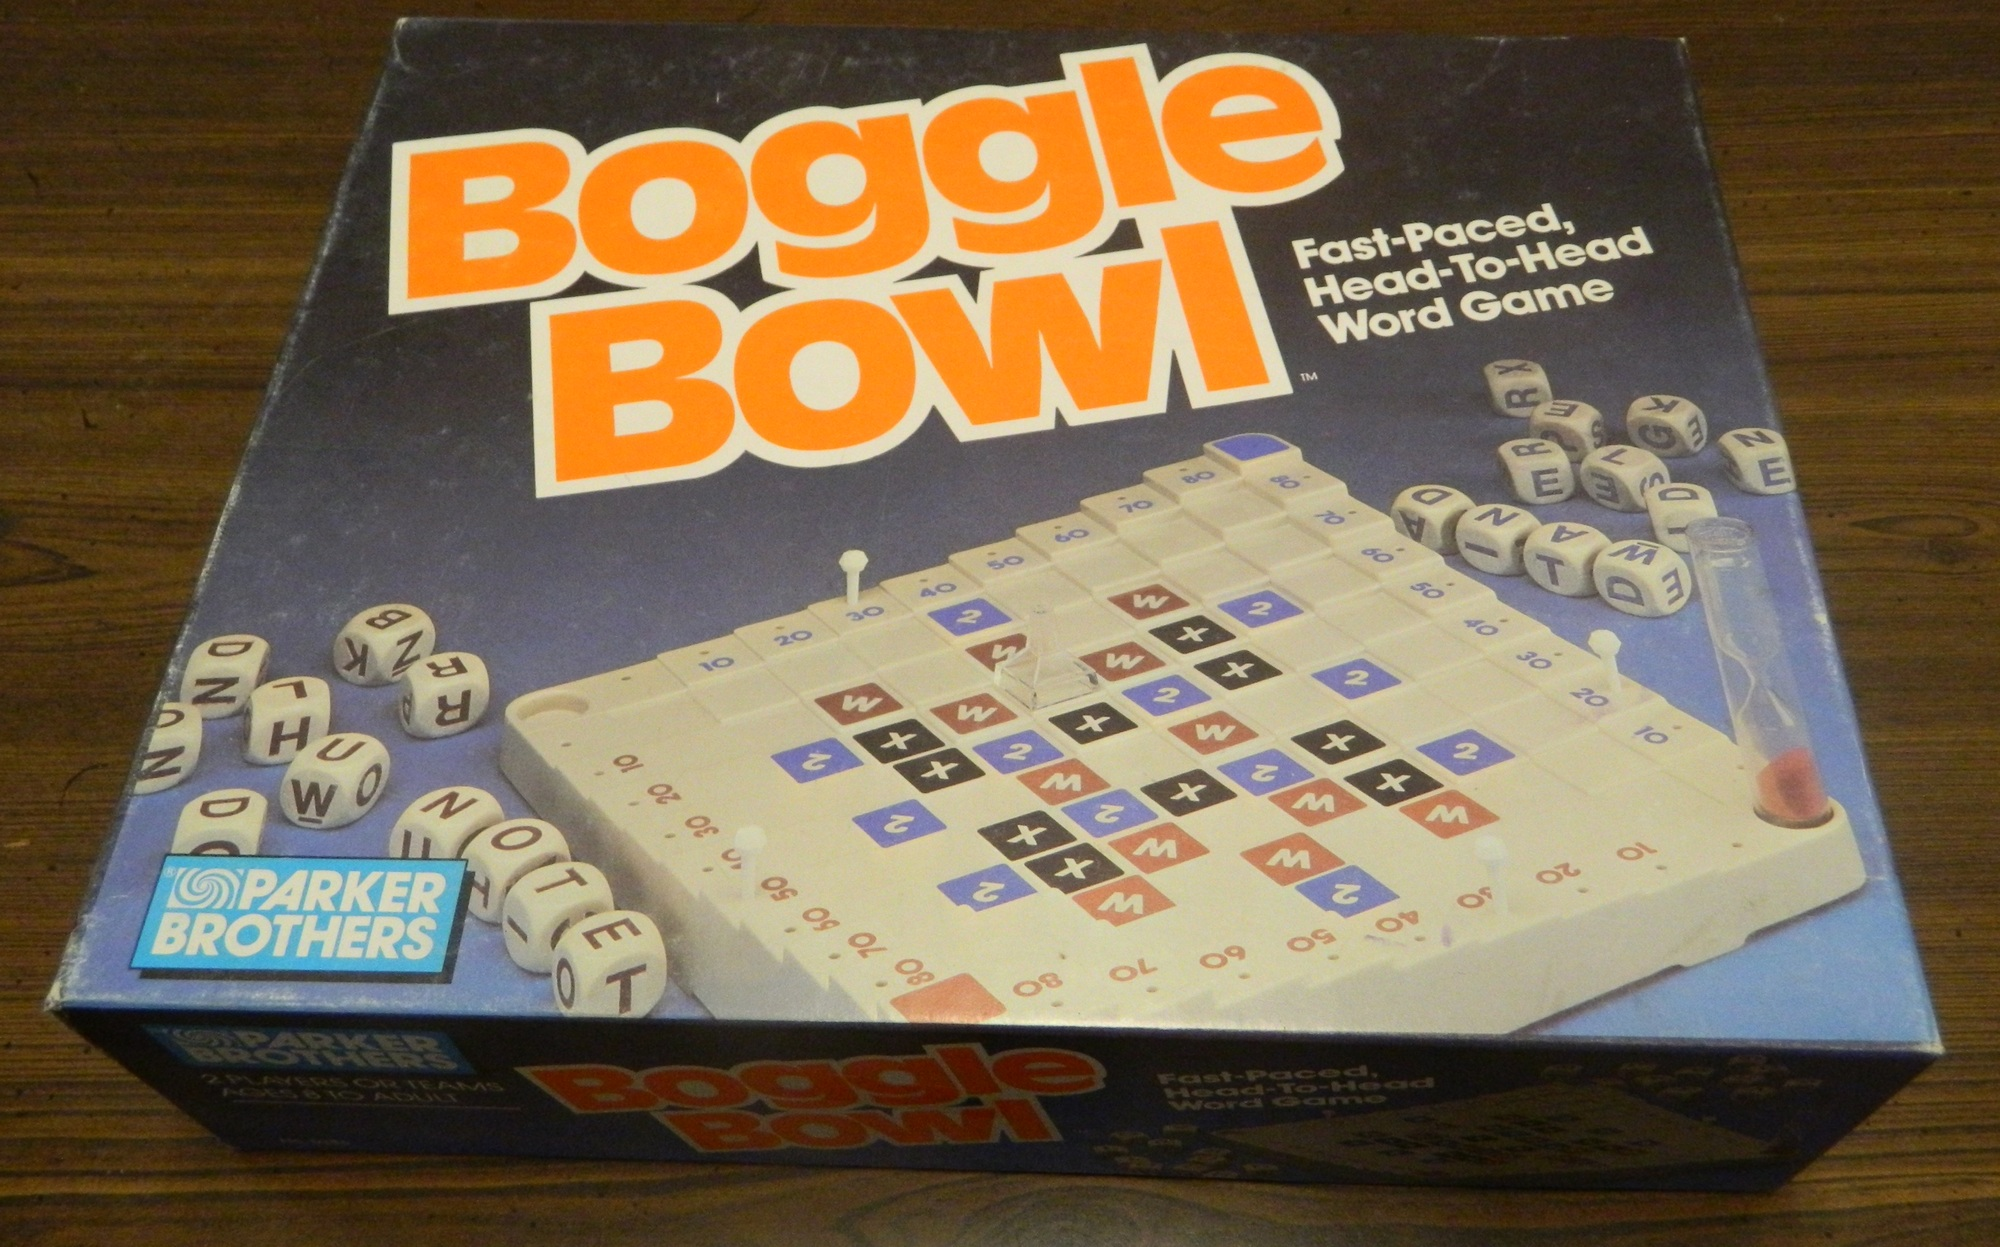 Box for Boggle Bowl